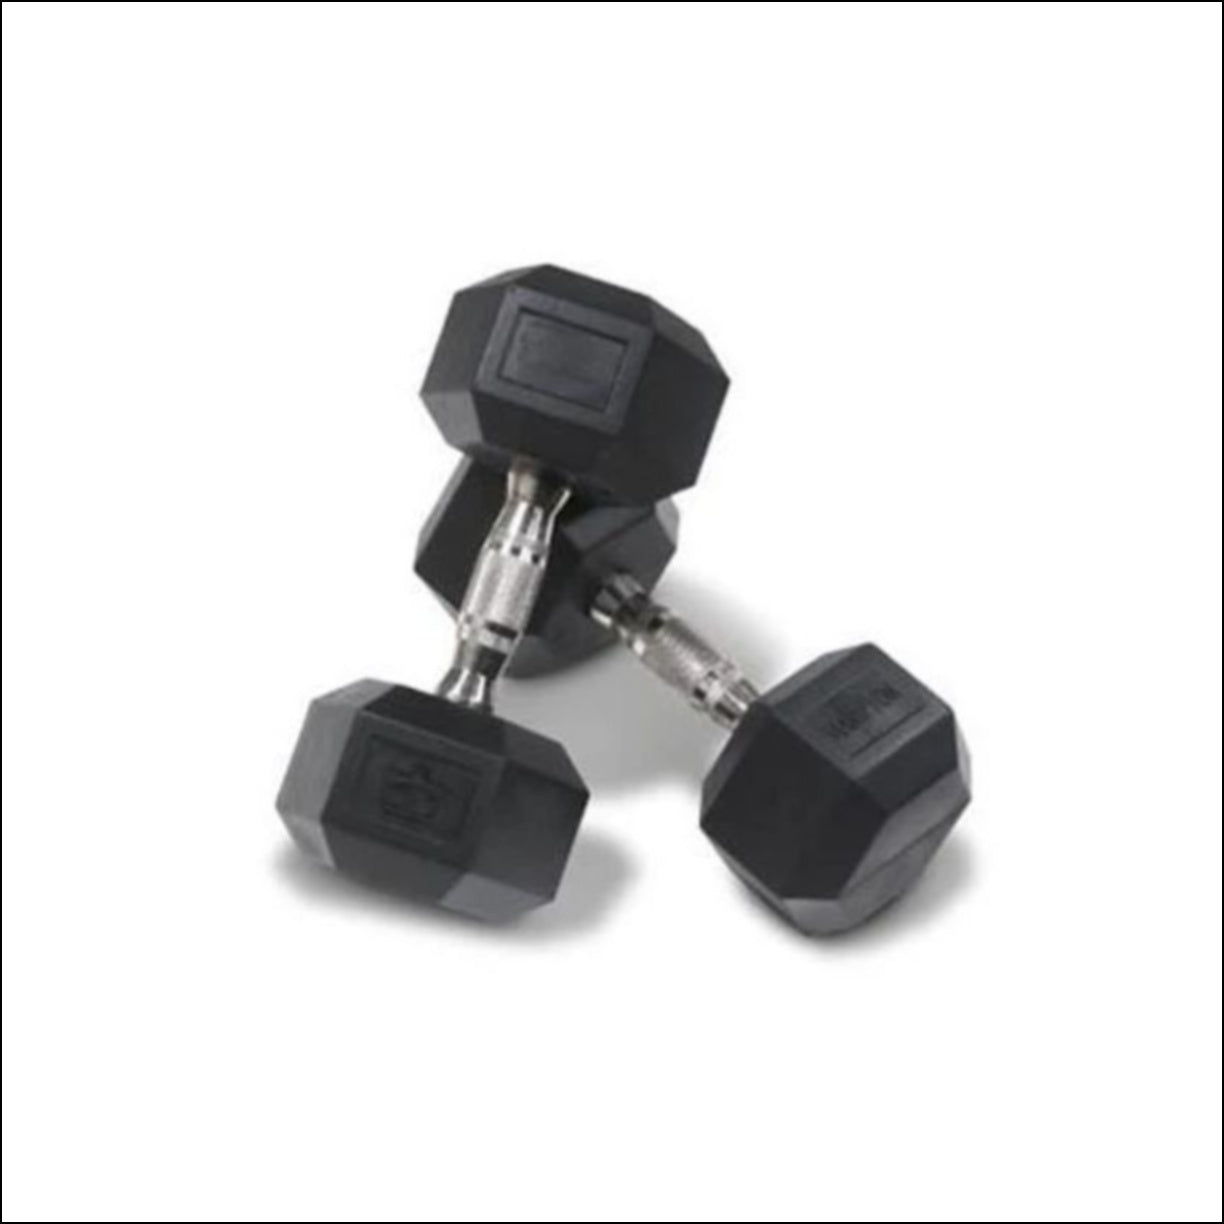 PAIR OF 2-KG RUBBER HEX DUMBBELLS  Muscle Motion rubber coated hexagonal dumbbells with ergonomic handles are designed for increased comfort and improved durability. The rubber coating reduces noise improves lifecycle of the product  (other finishes such as chrome and cast iron are subject to chipping and rust). Rubber coated dumbbells are also kinder on floor surfaces. The hexagonal shaped ends are designed to prevent the dumbbell from rolling on the floor or dumbbell rack.